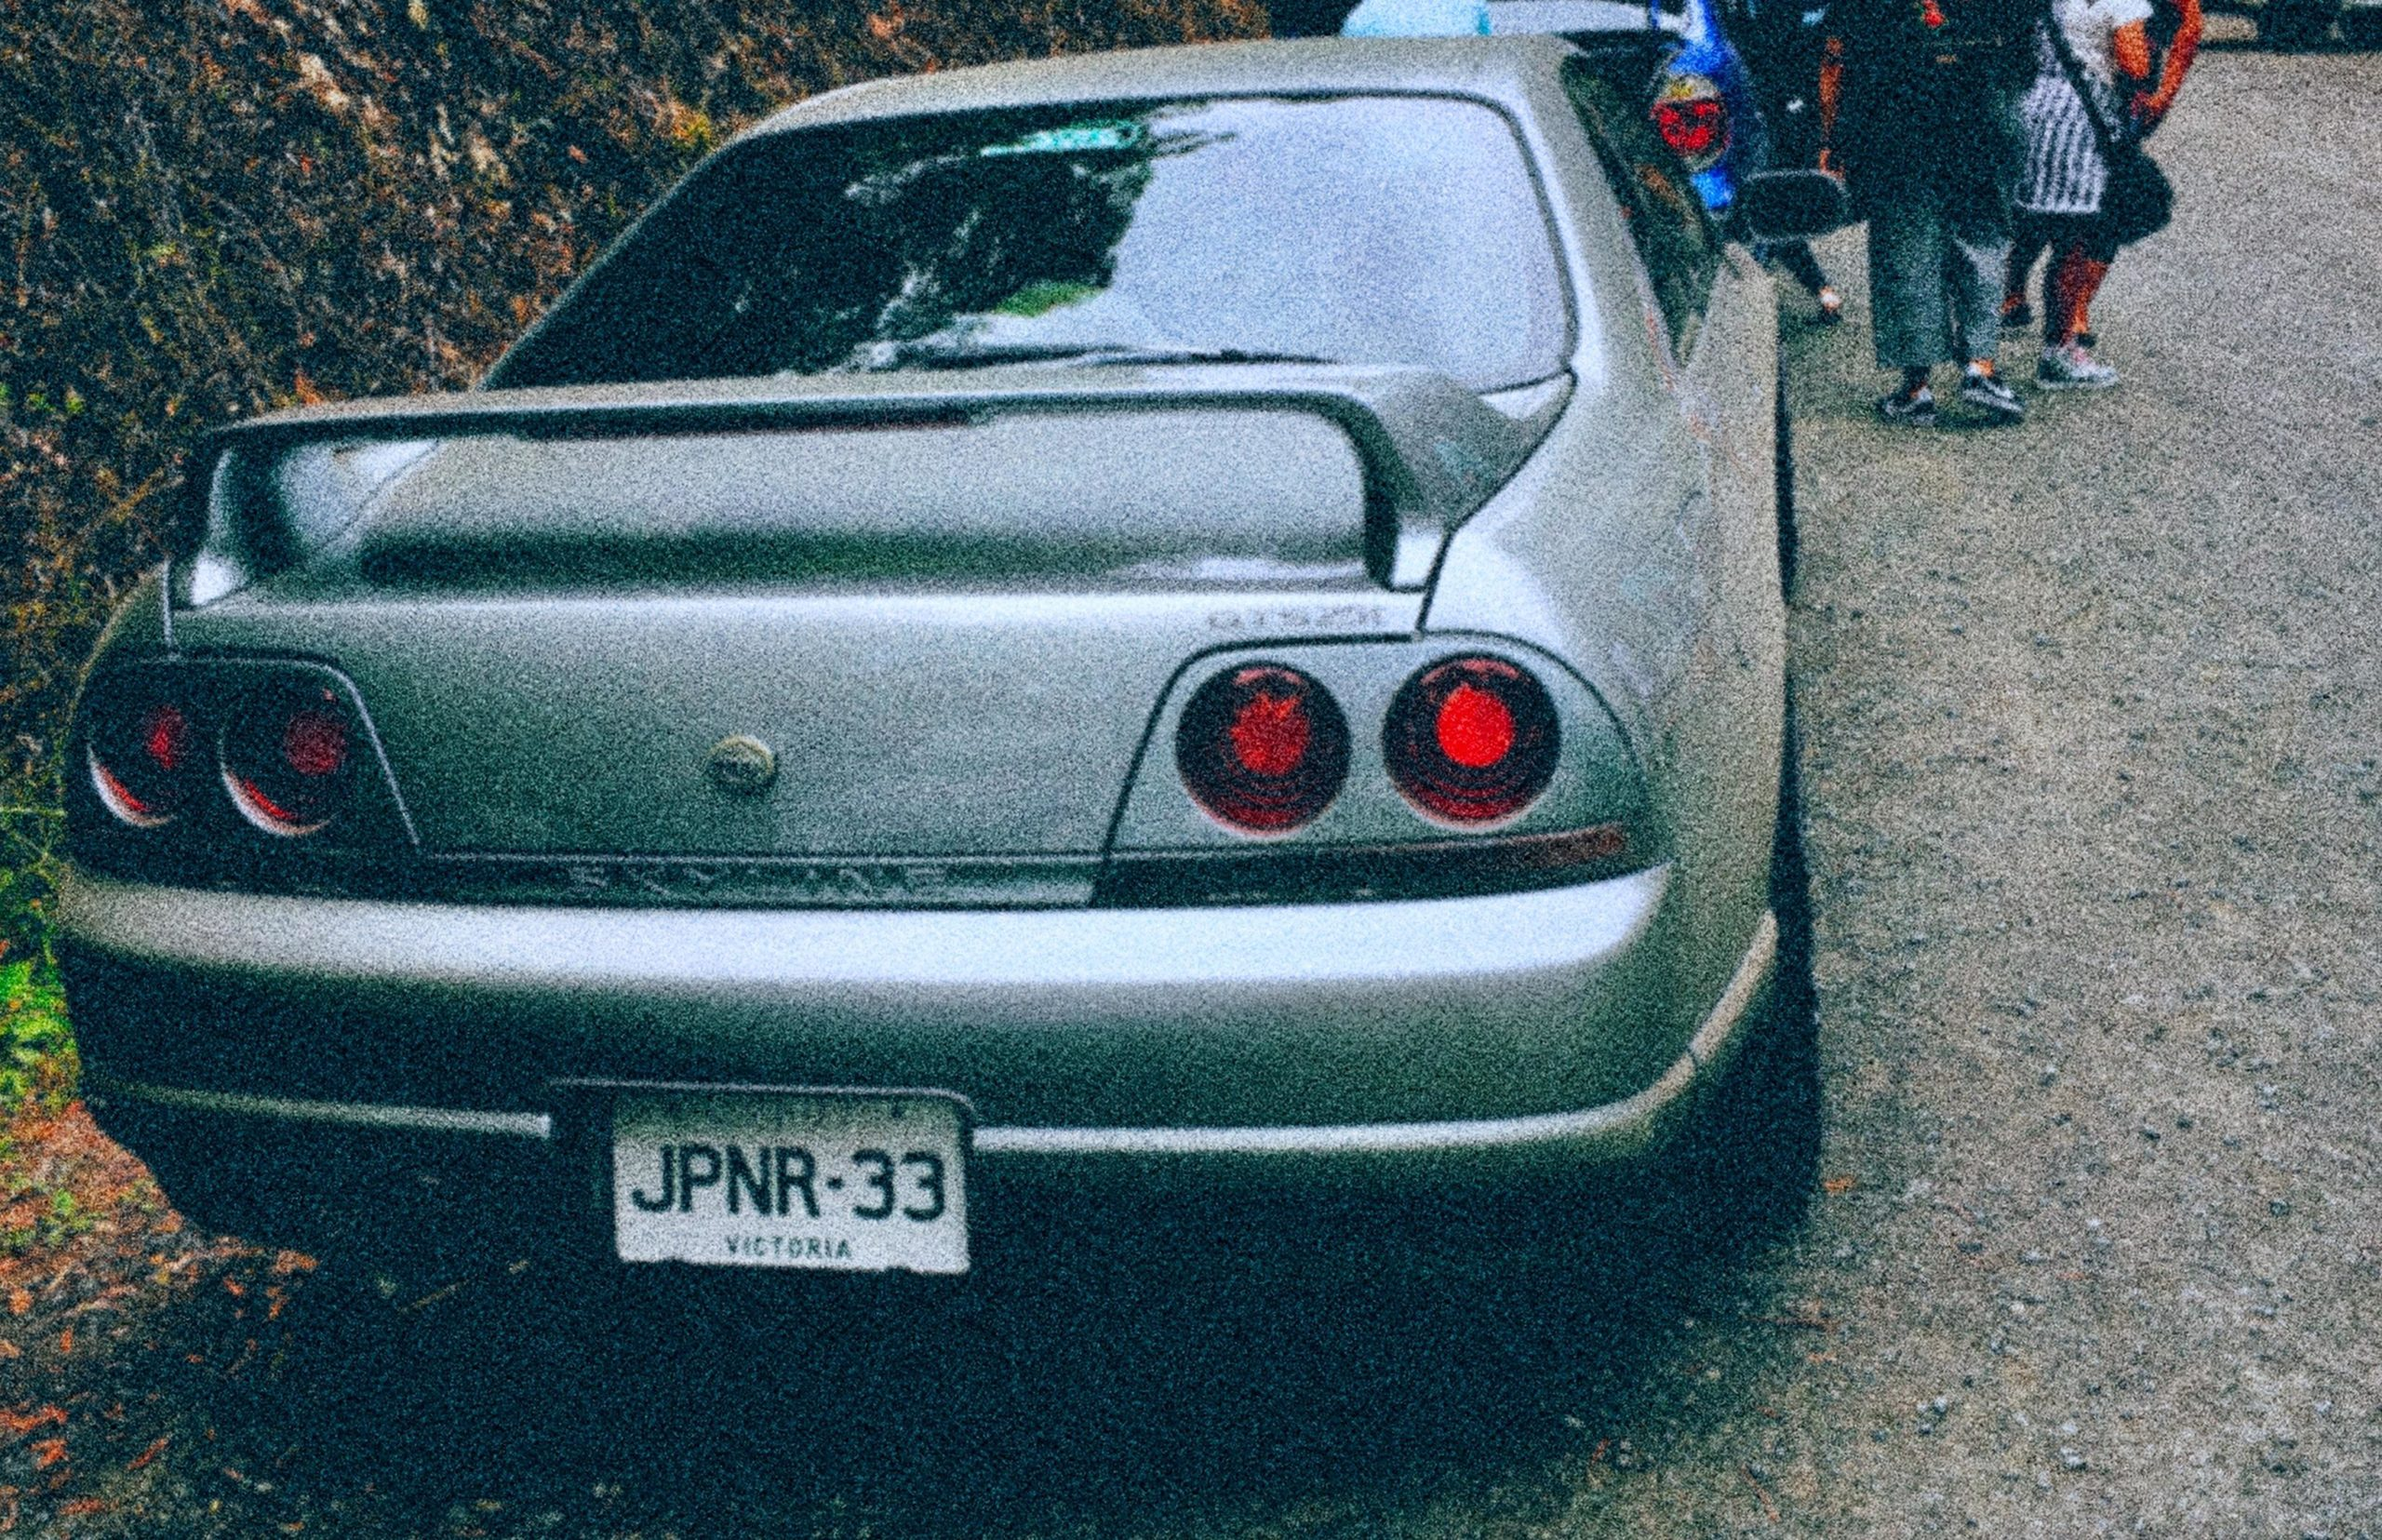 Clean skyline r33 with matching n-plate